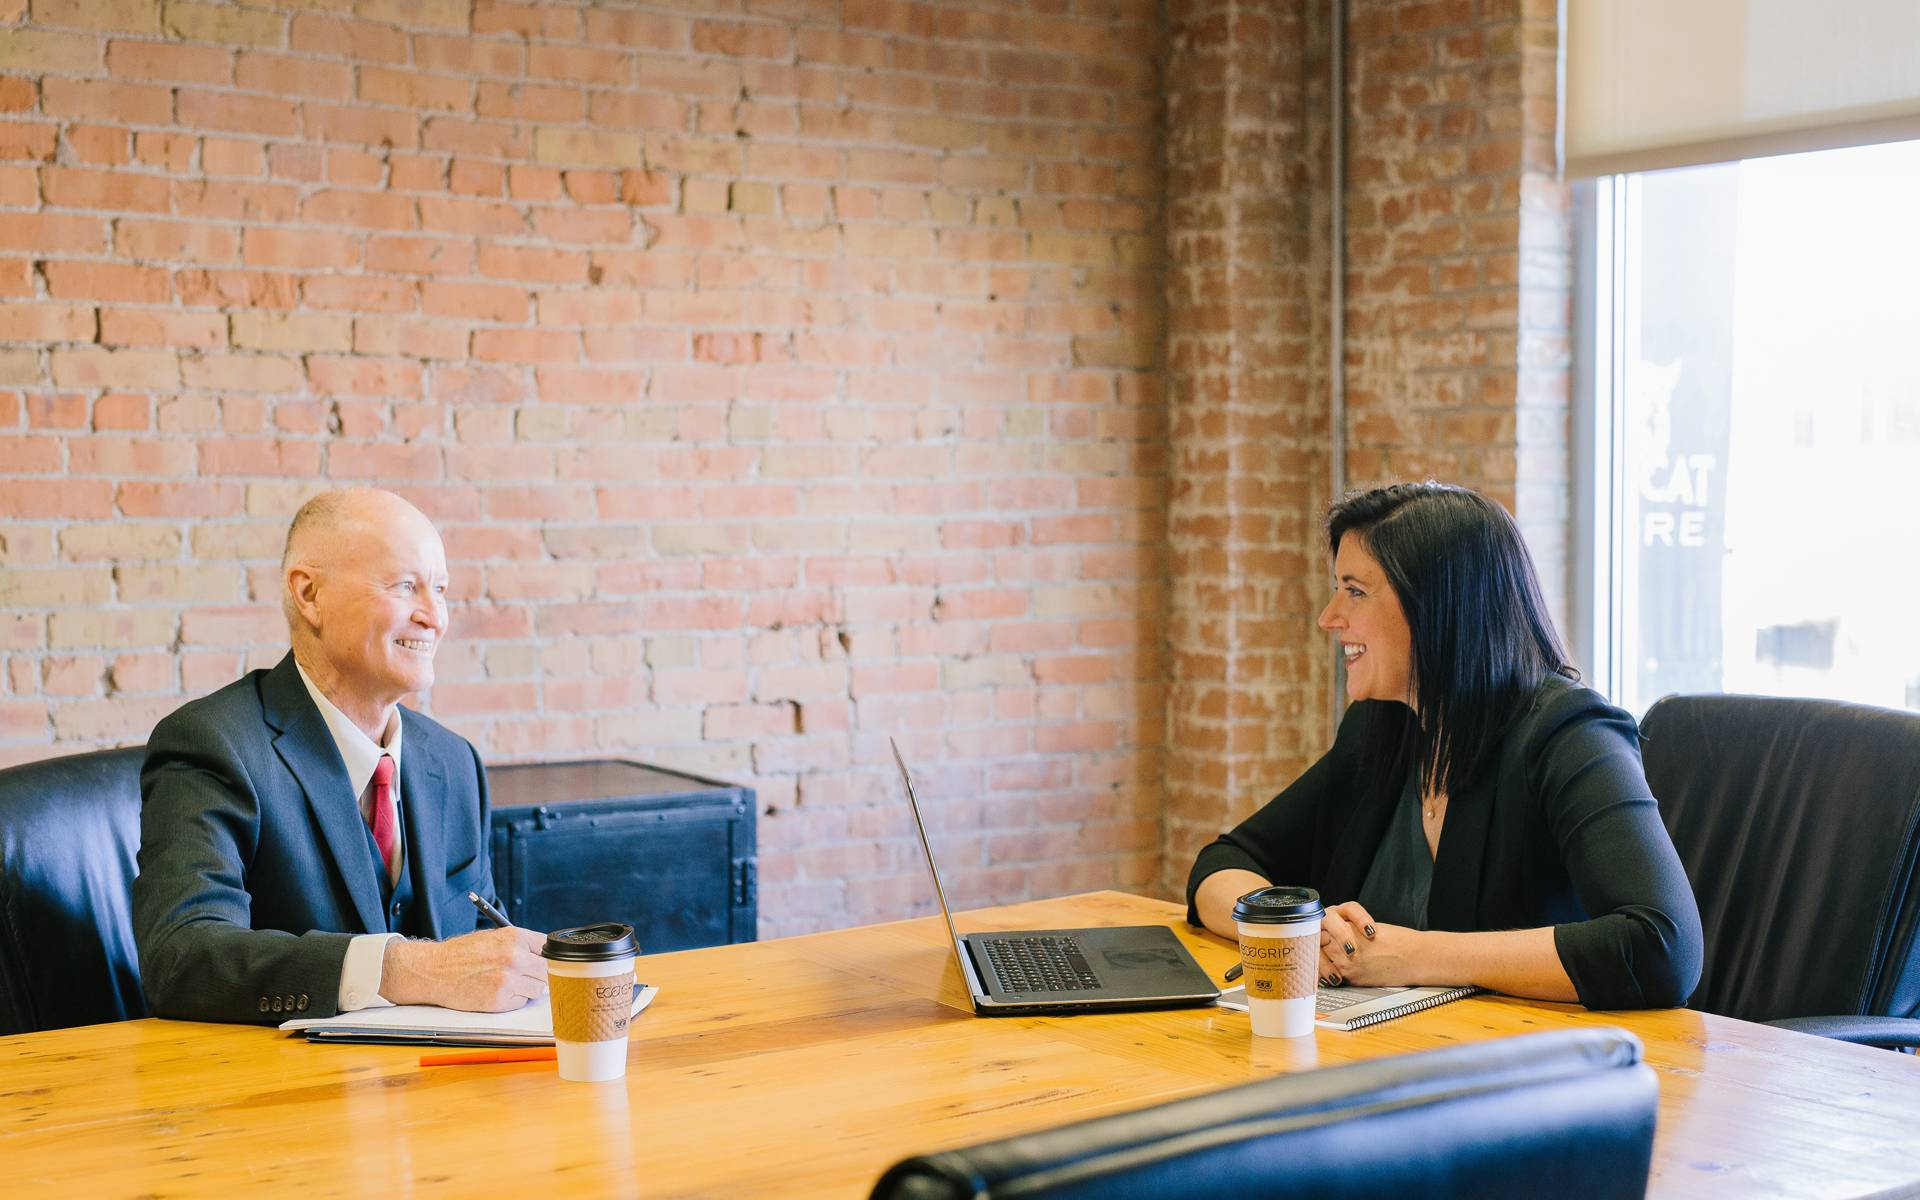 10 Questions a Lender Will Ask Before Funding Your Small Business